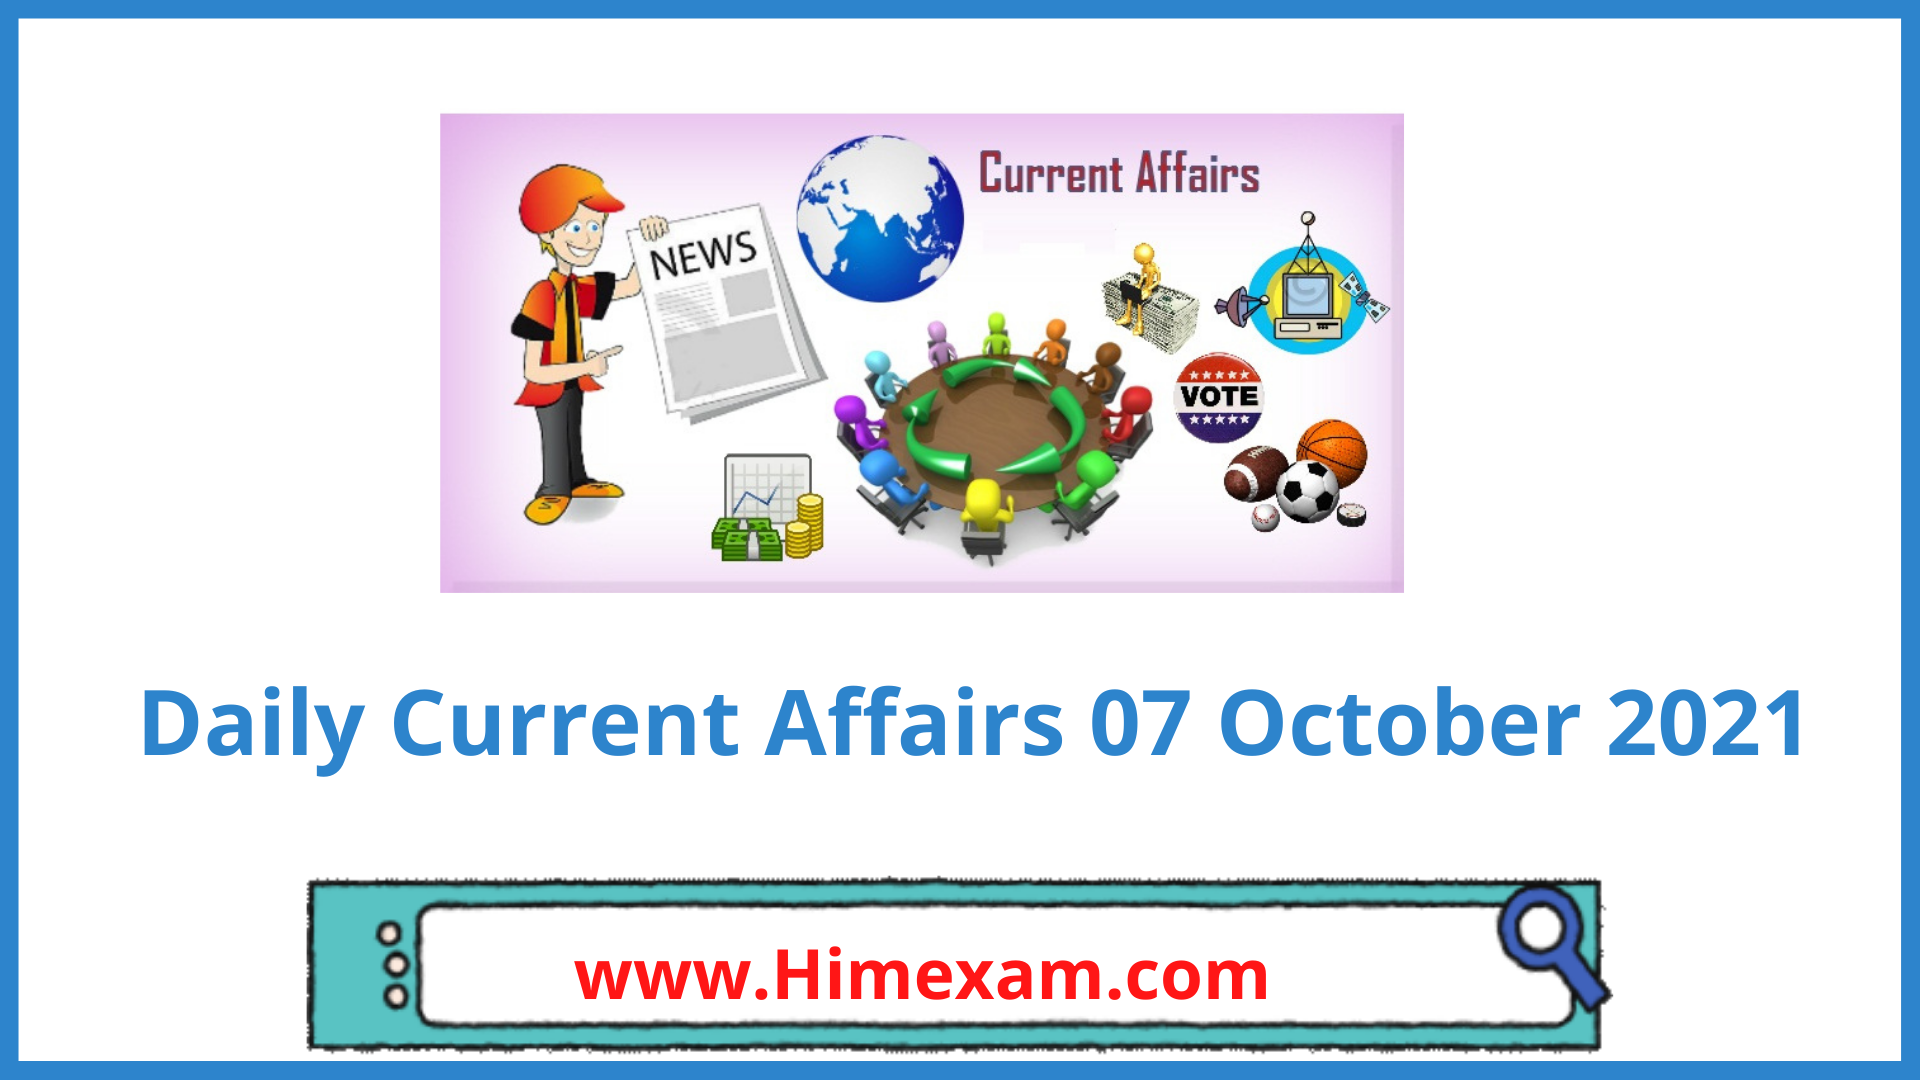 Daily Current Affairs 07 October 2021